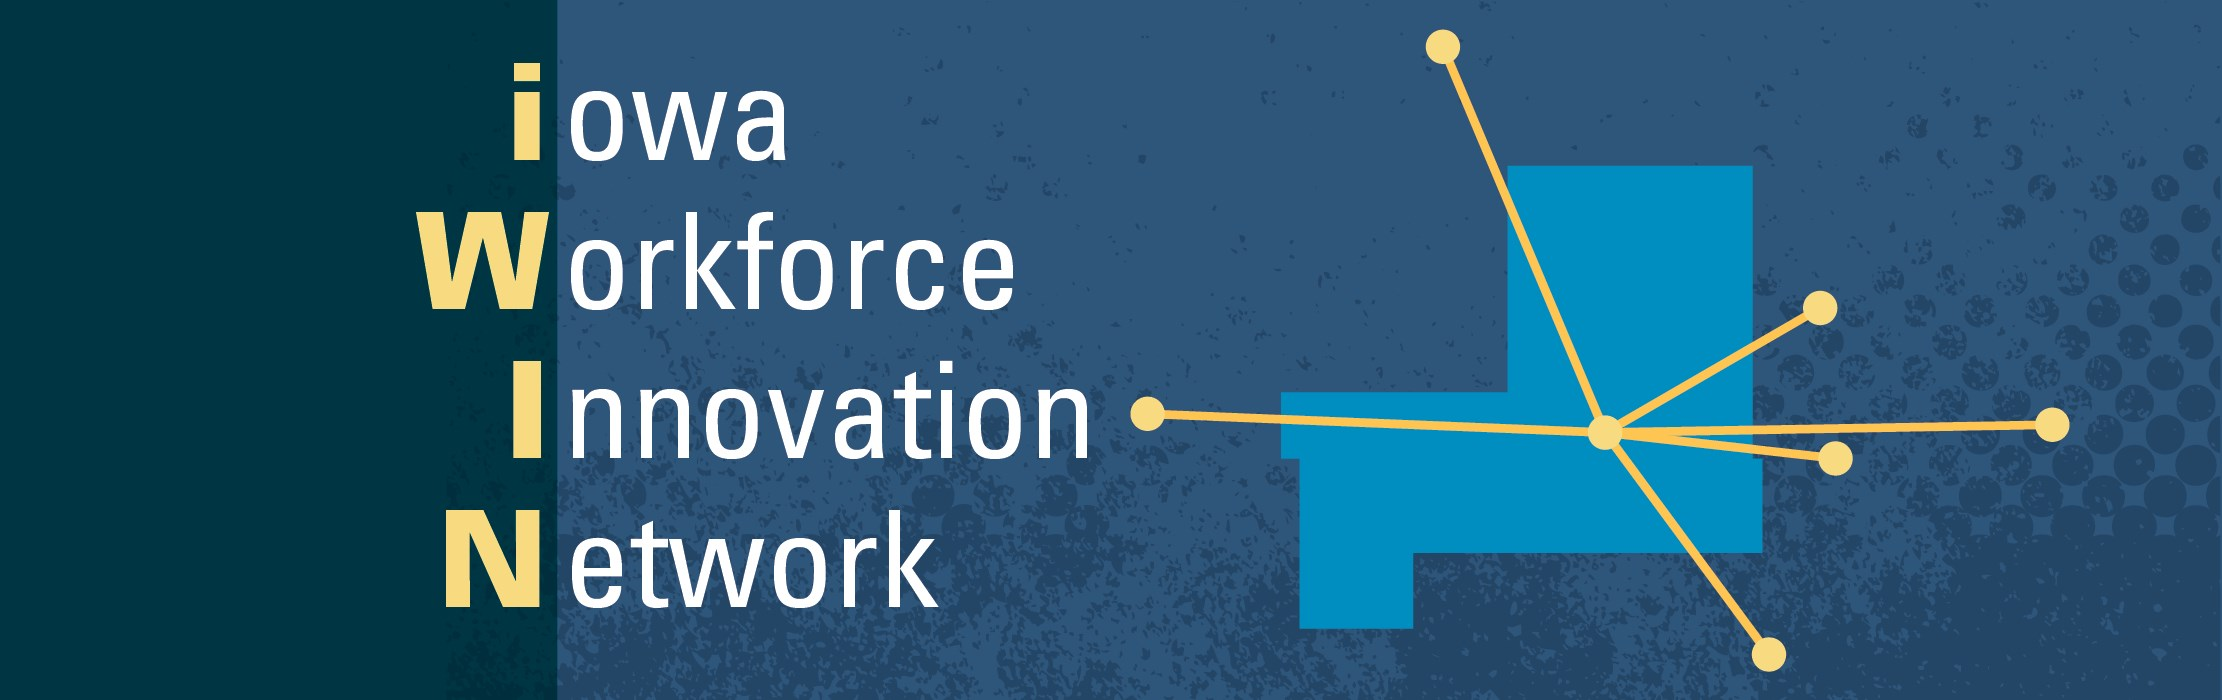 Iowa Workforce Innovation Network.